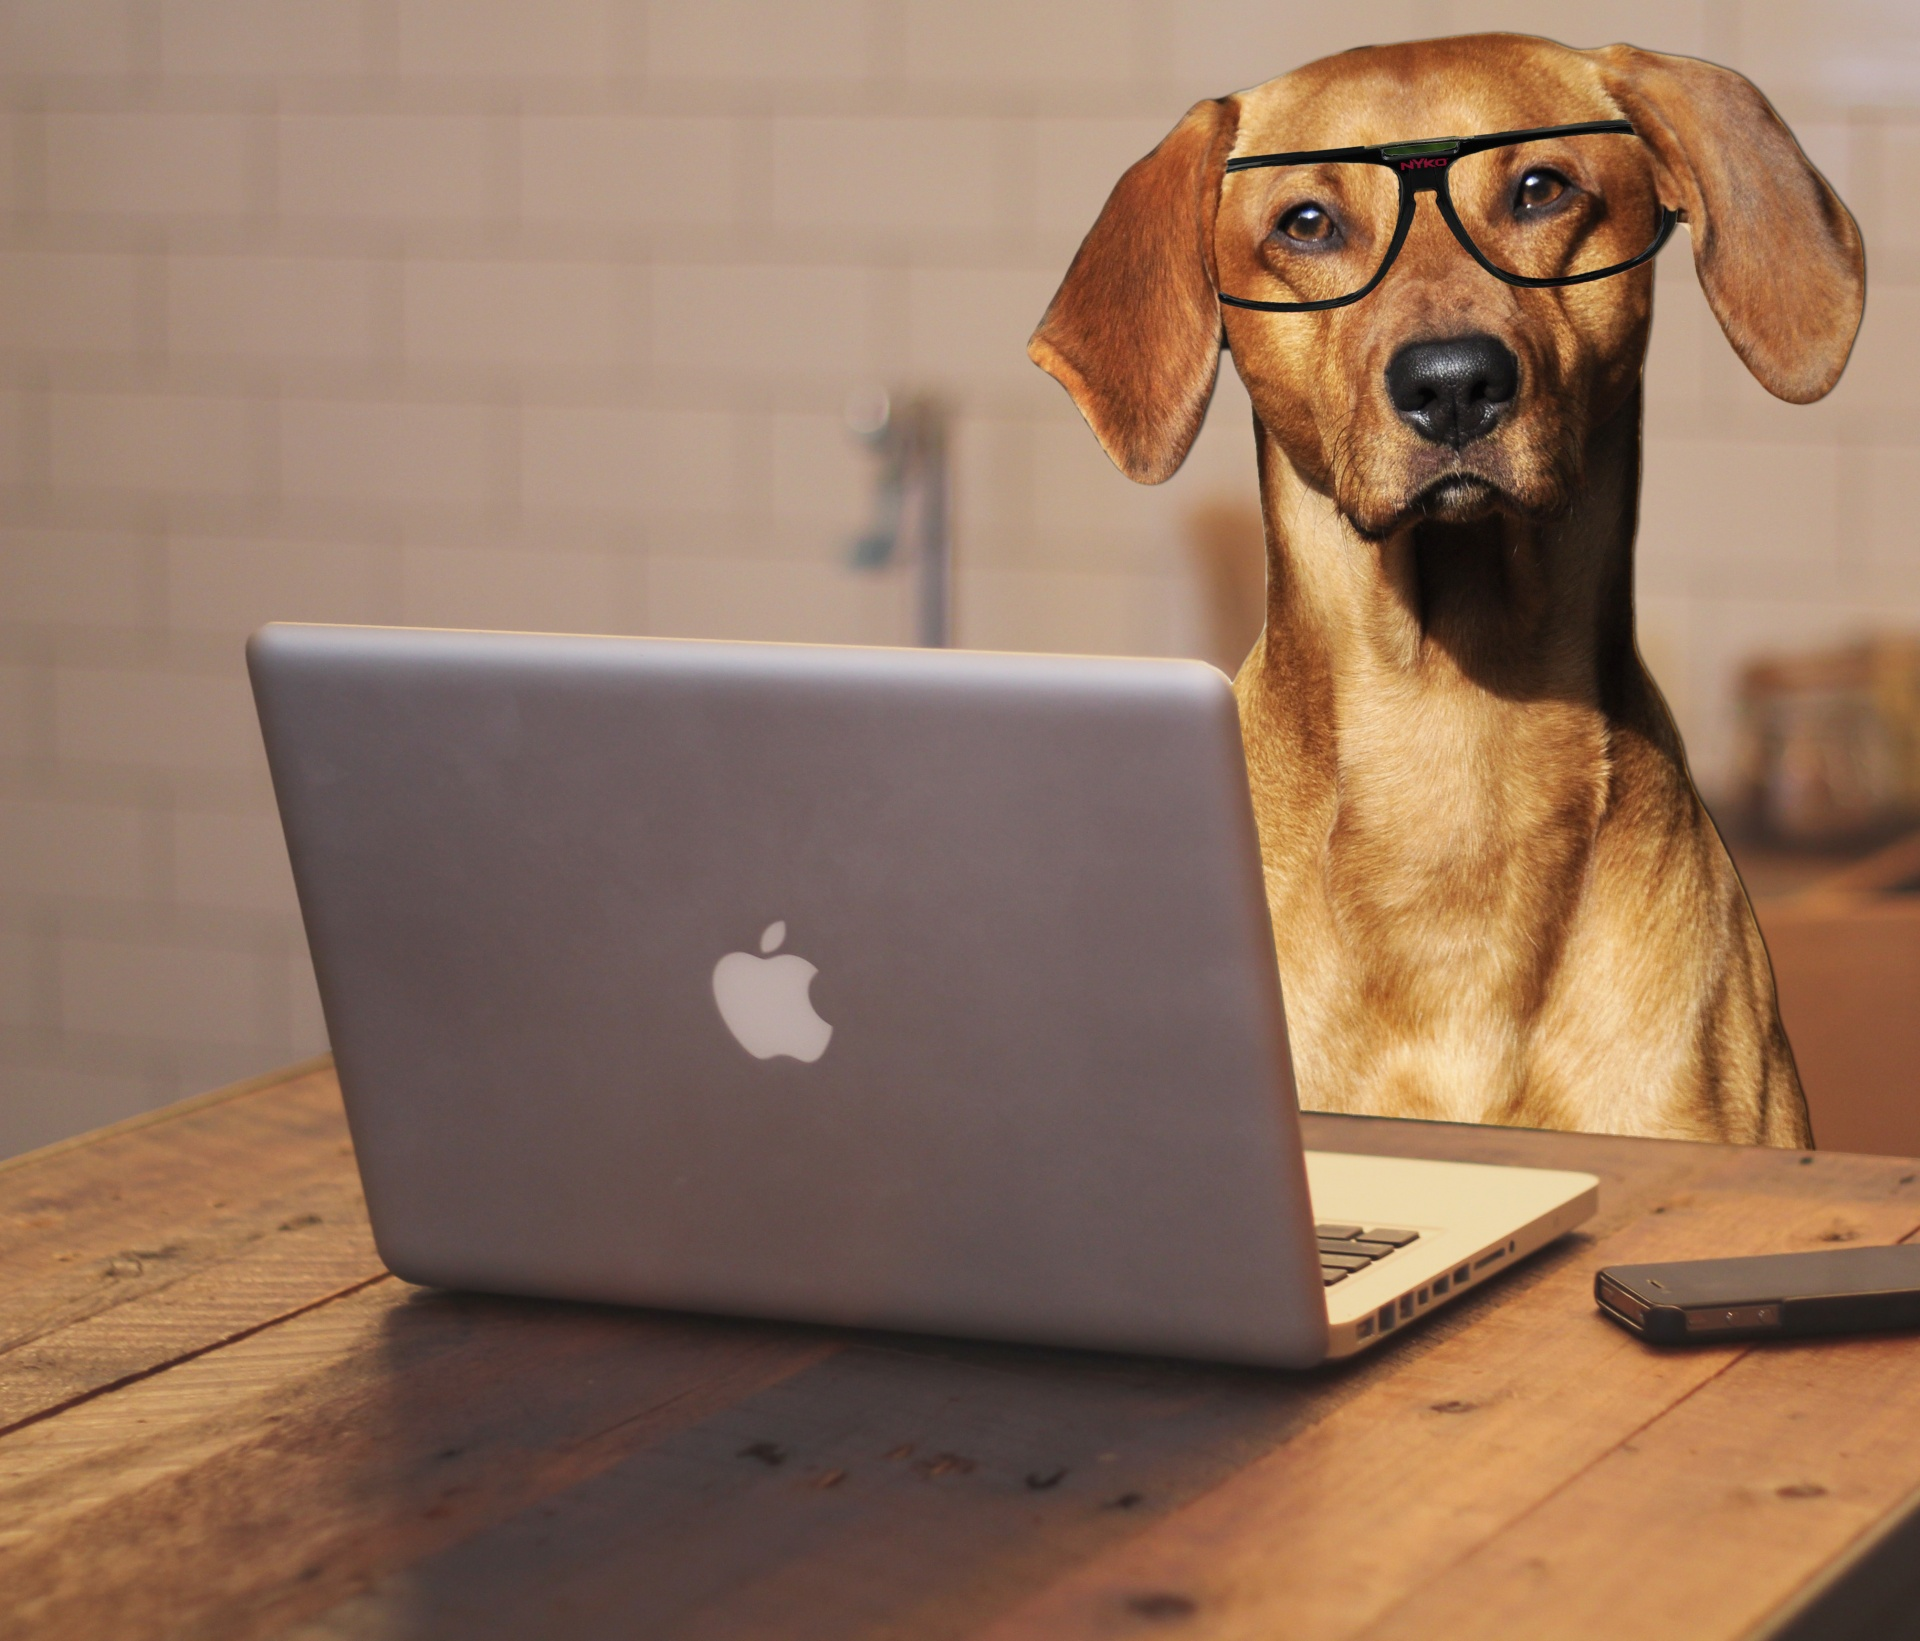 Dog wearing glasses and working on a laptop